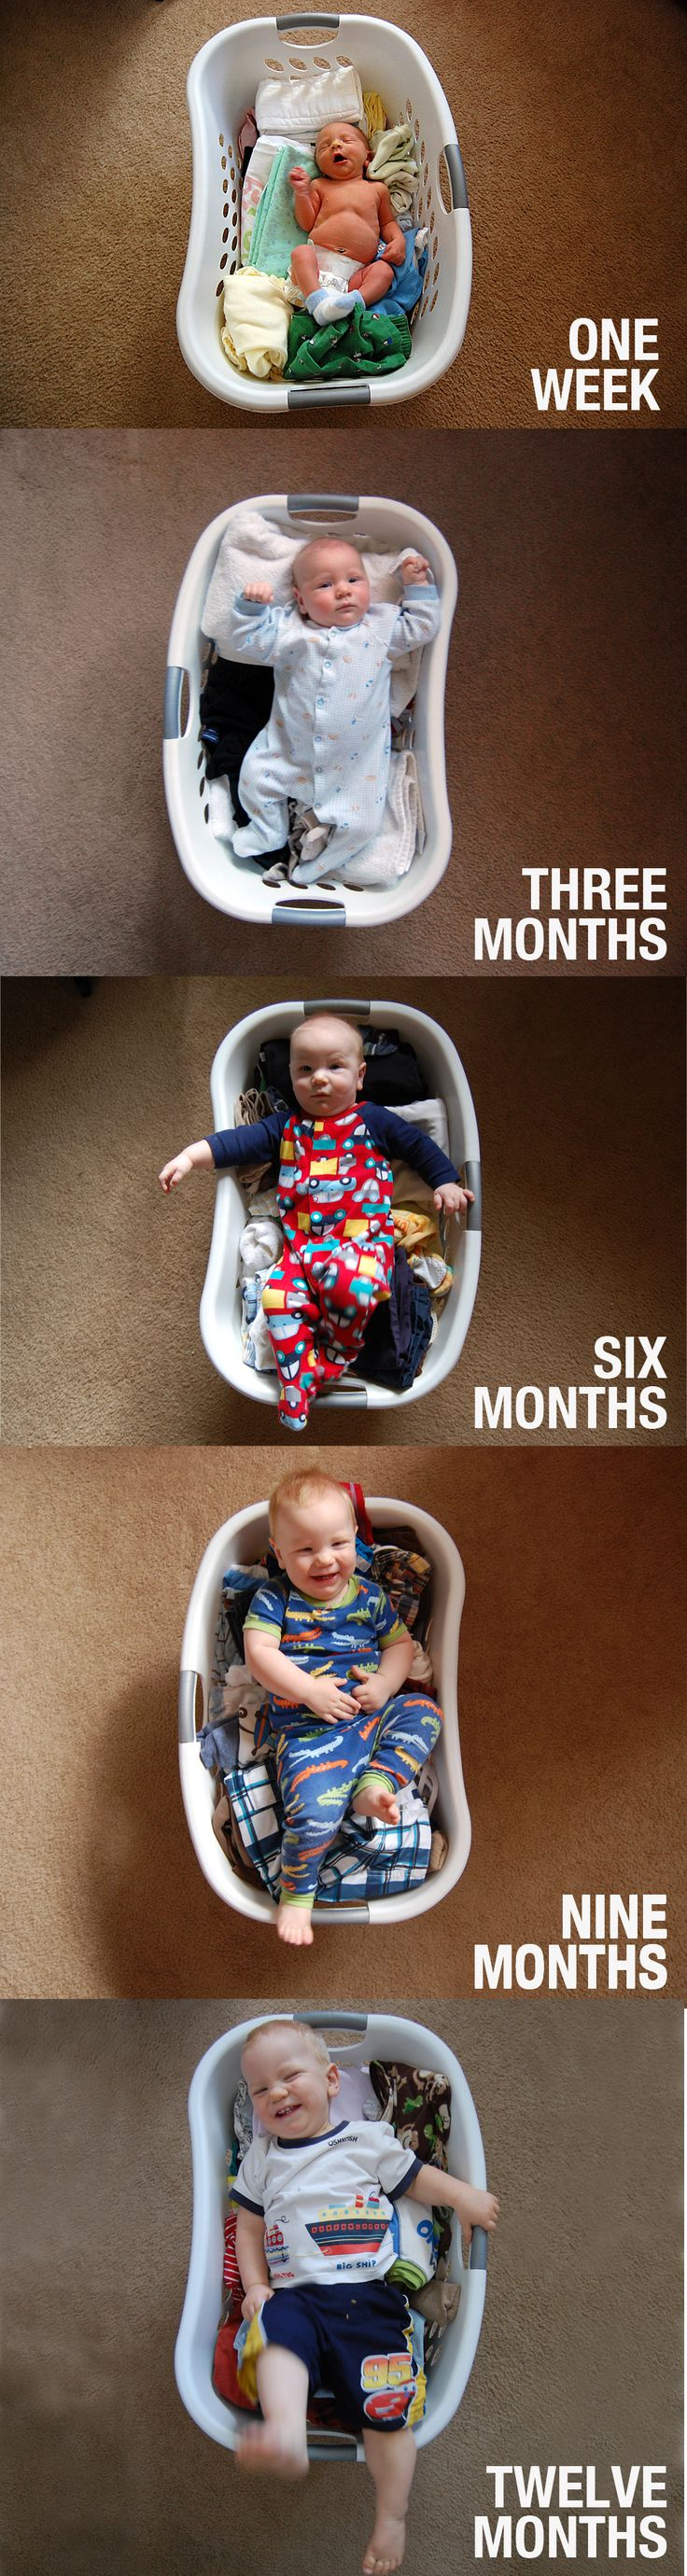 Baby's first year photo series: Photos Projects, Remember This, Photos Ideas, Cute Ideas, Growth Charts, Projects Ideas, Baby Pictures, Laundry Baskets, Baby Photos